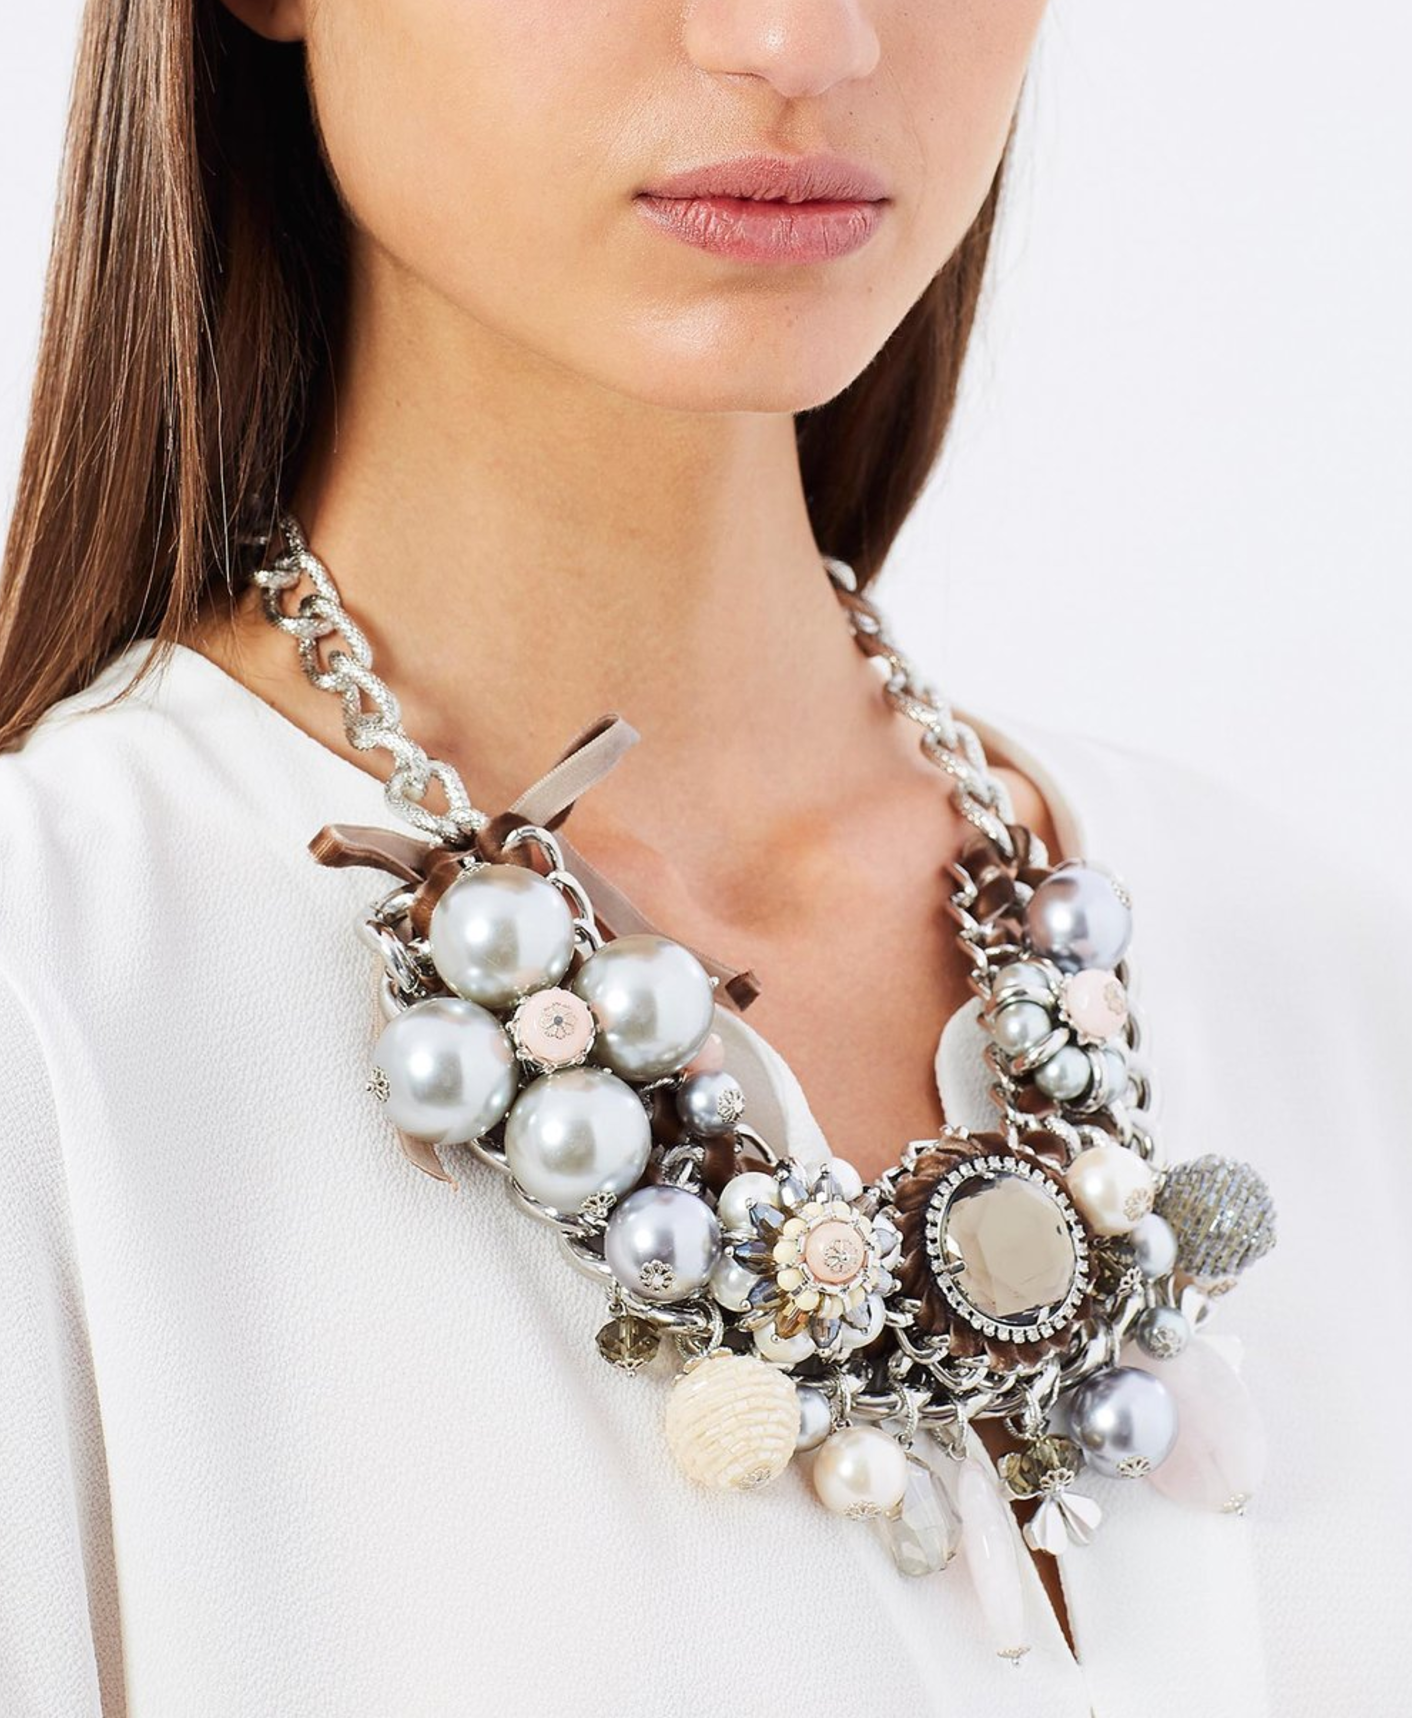 Izoa pearl and jewel statement necklace $129